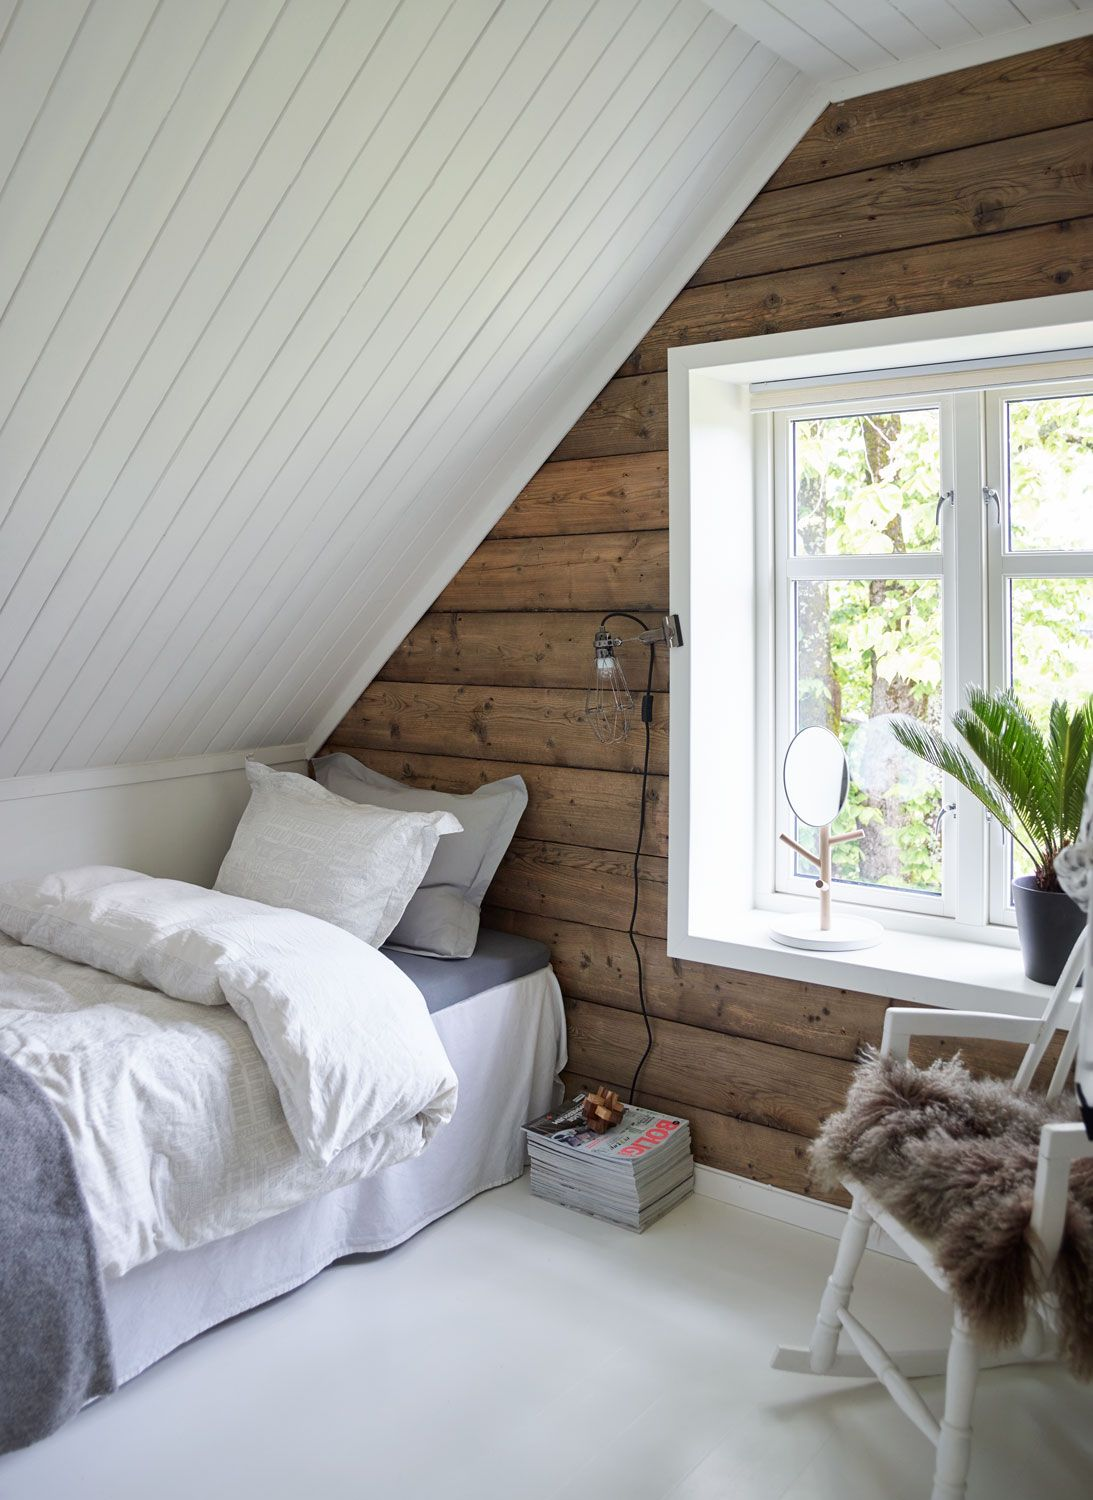 Attic bedroom design and d cor tips small attic bedrooms for Upstairs bedroom ideas